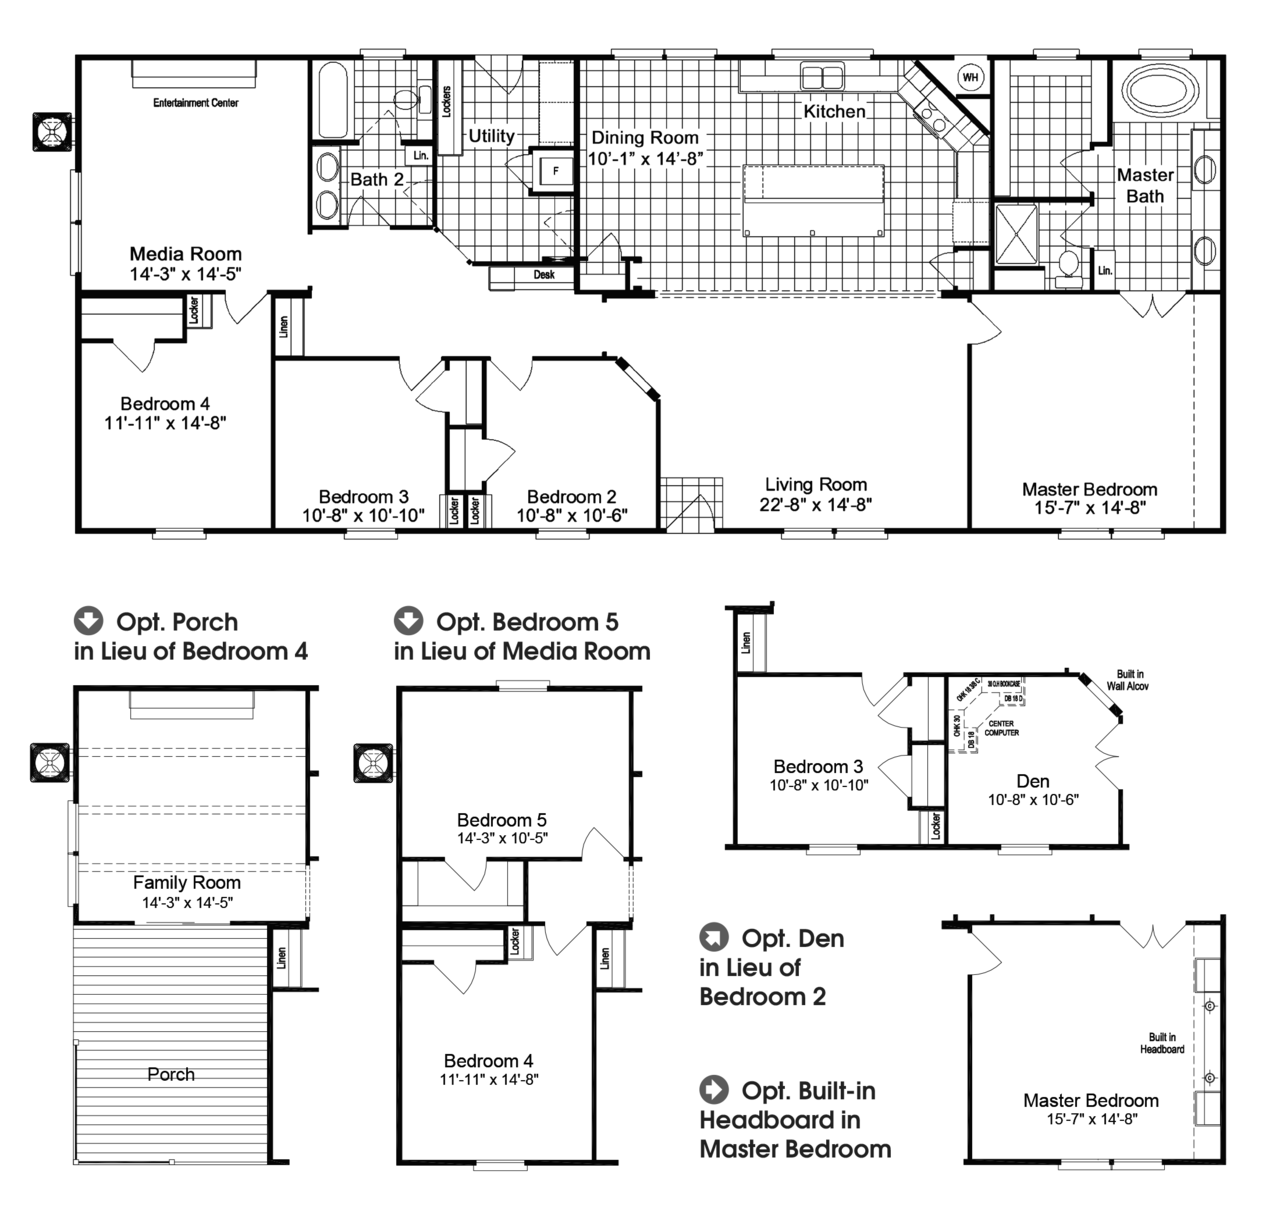 View The Homerun Floor Plan For A 2160 Sq Ft Palm Harbor: program for floor plans